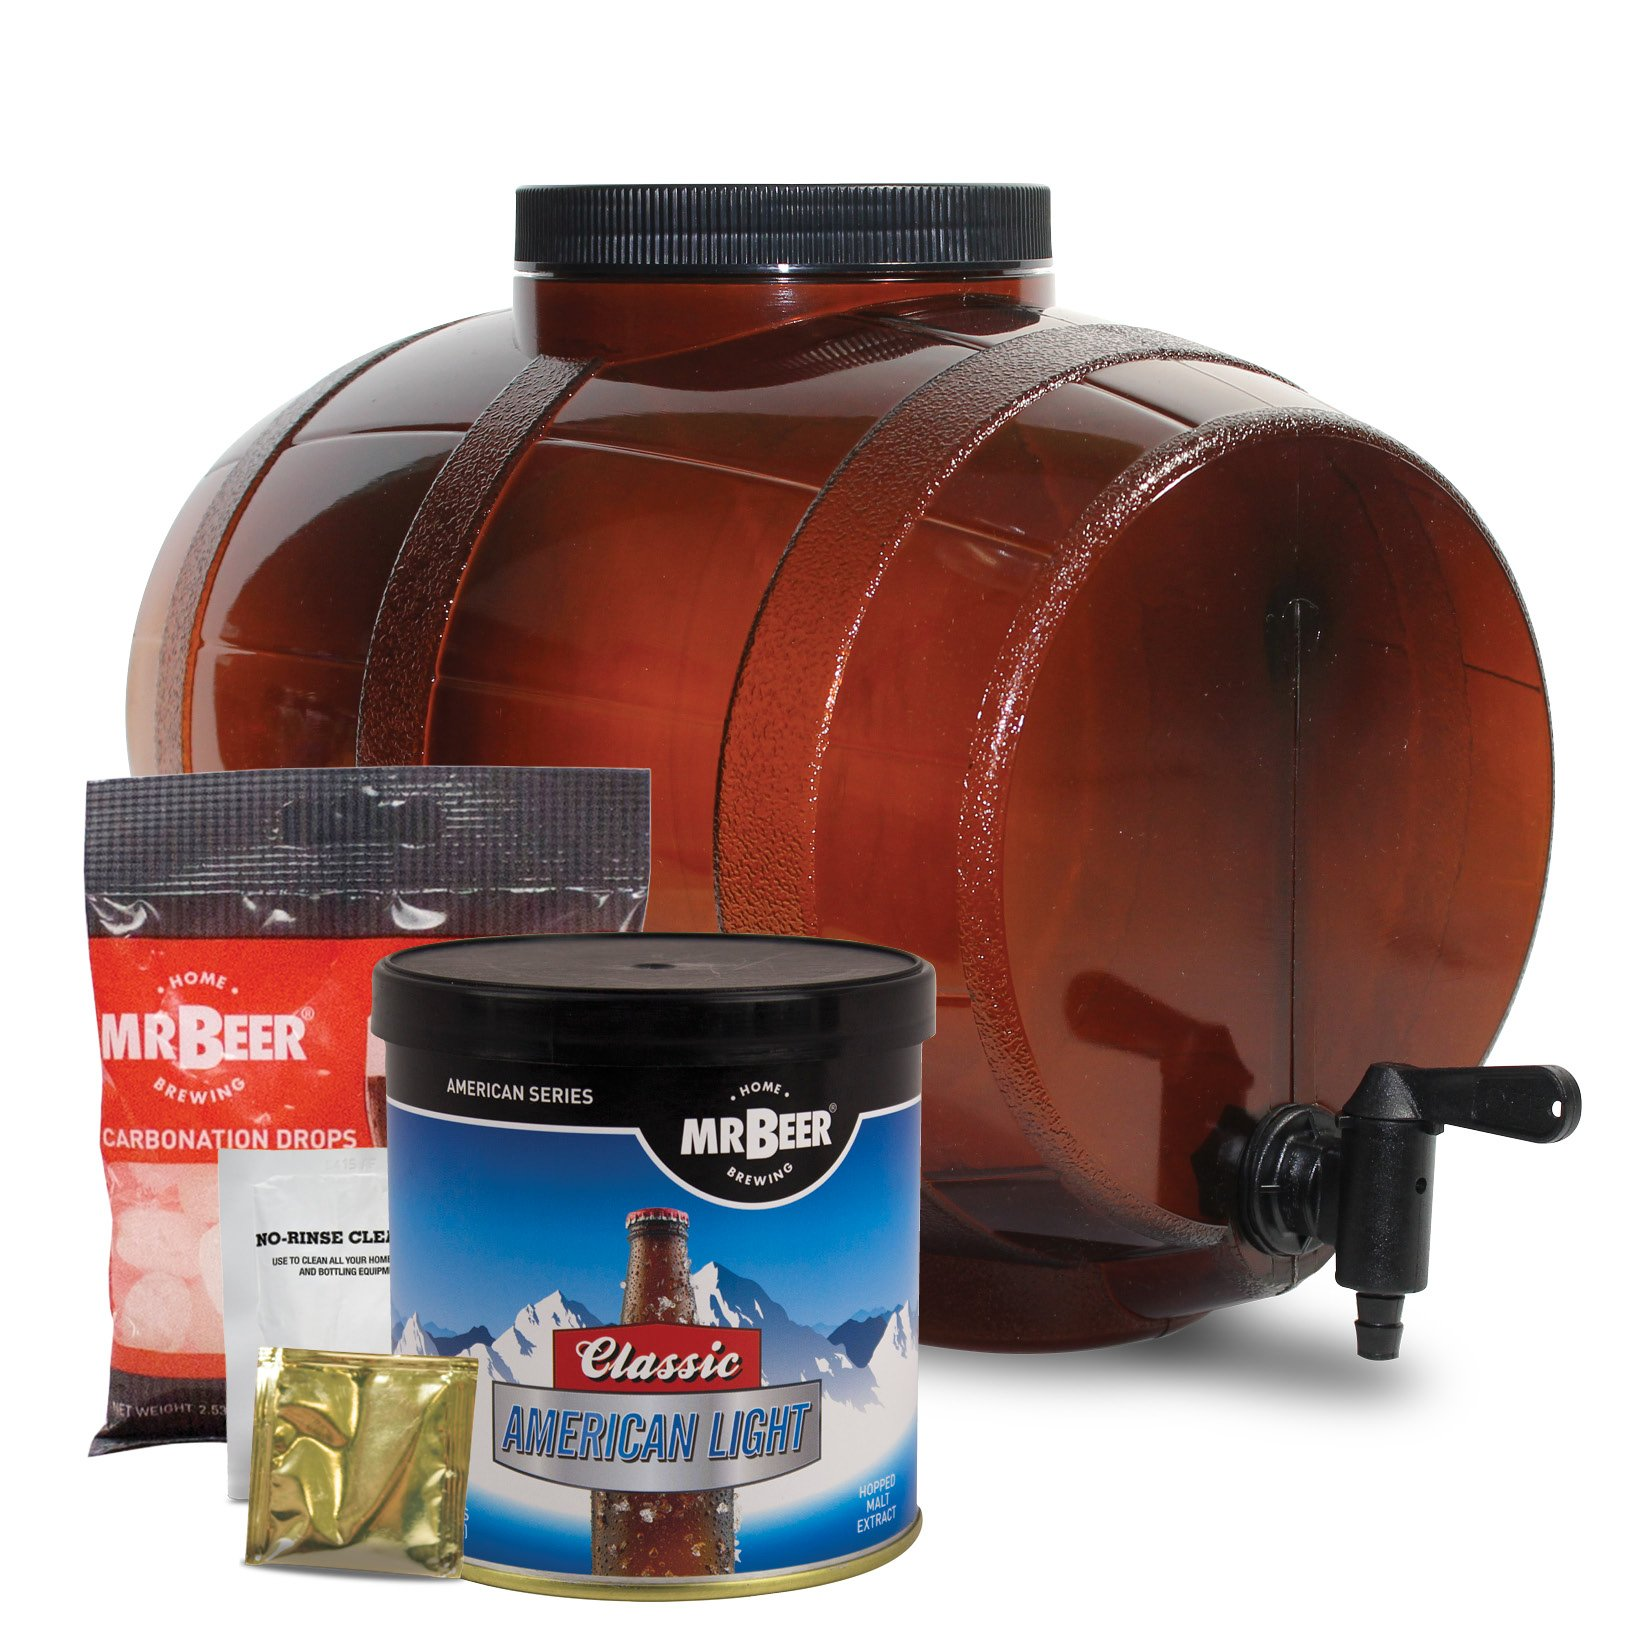 Mr. Beer Deluxe Edition 2 Gallon Homebrewing Craft Beer Making Kit with Classic American Light Refill